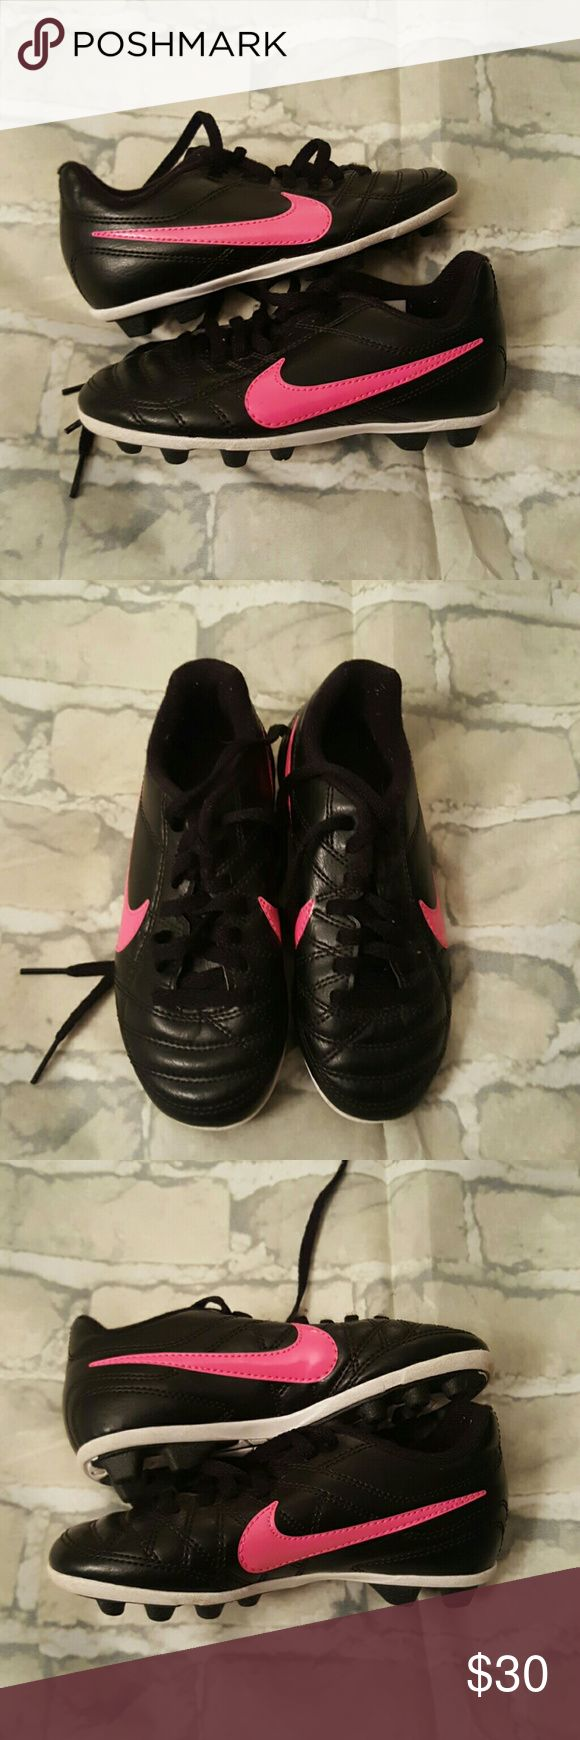 Toddler nike cleats Size 11c. Black pink and white. Gently used. Like new condition Nike Shoes